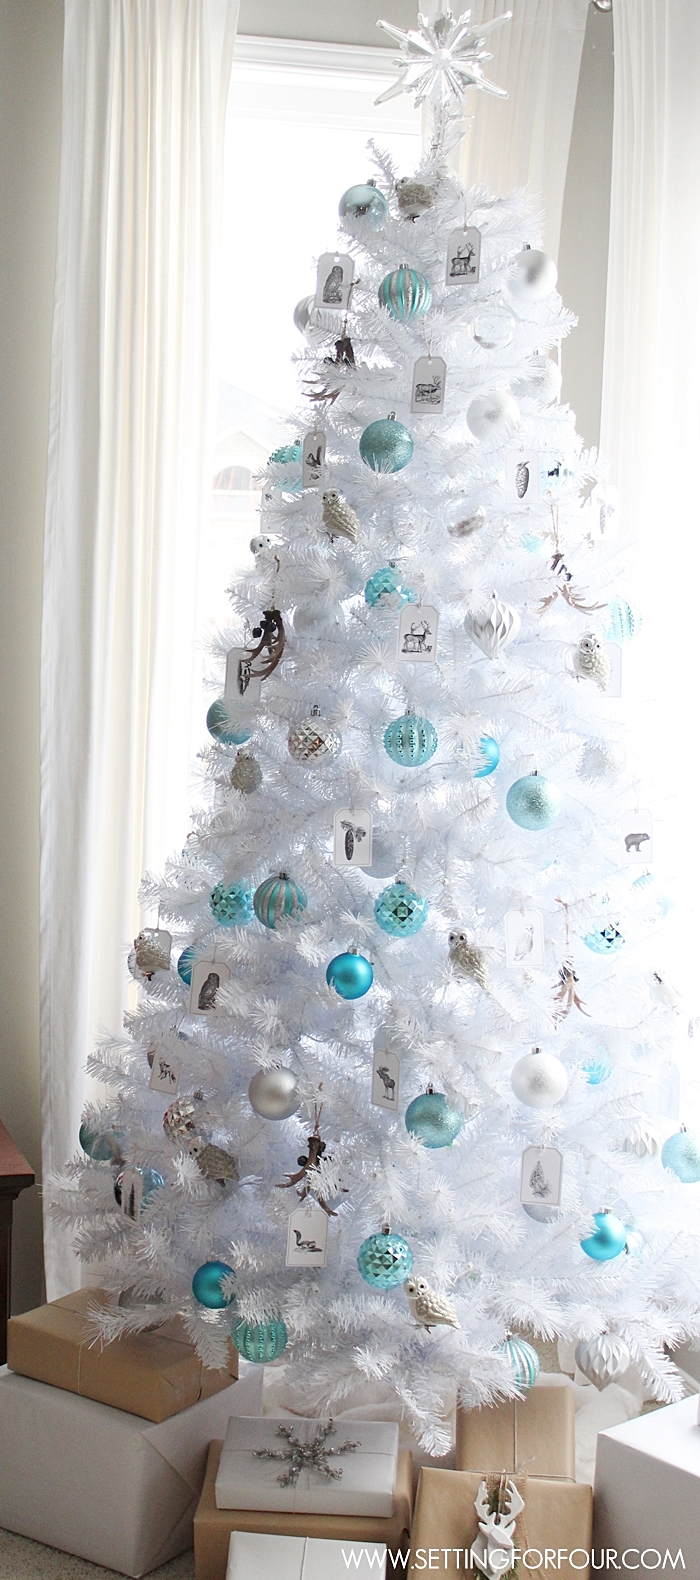 18 creative christmas tree decorating ideas - Turquoise Christmas Tree Decorations